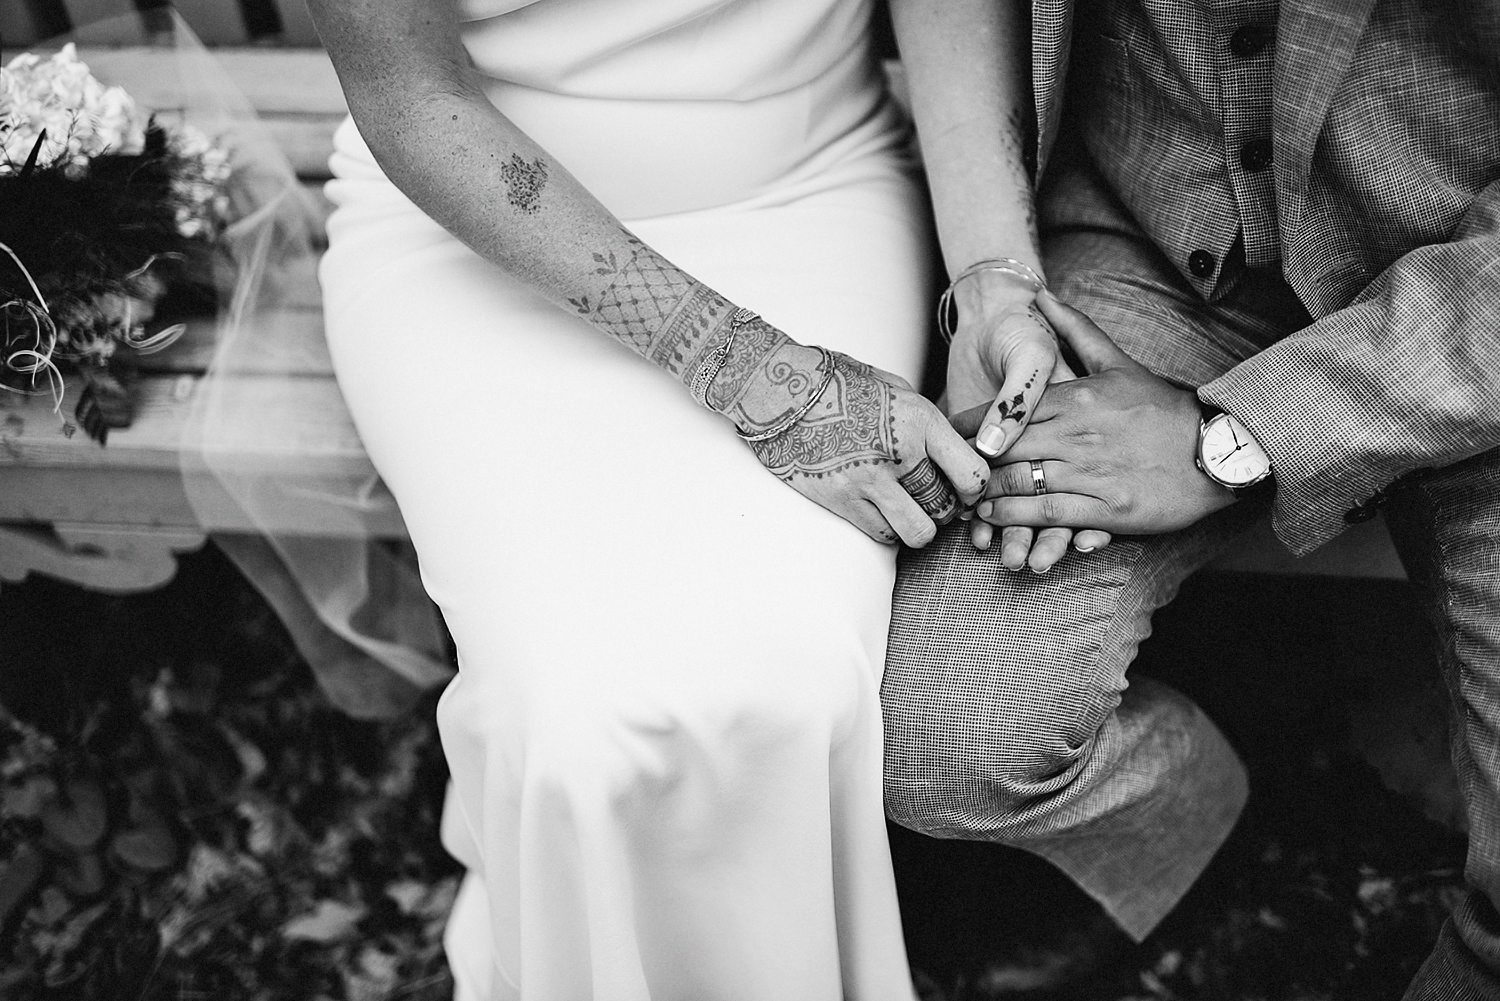 Best-Documentary-photojournalistic-wedding-photographers-Toronto-Ontario-Canada-Rural-Country-House-Backyard-Wedding-Ceremony-Vintage-Couple-Aesthetic-Bride-groom-Small-Country-Town-Portraits-Hands-Detail.jpg